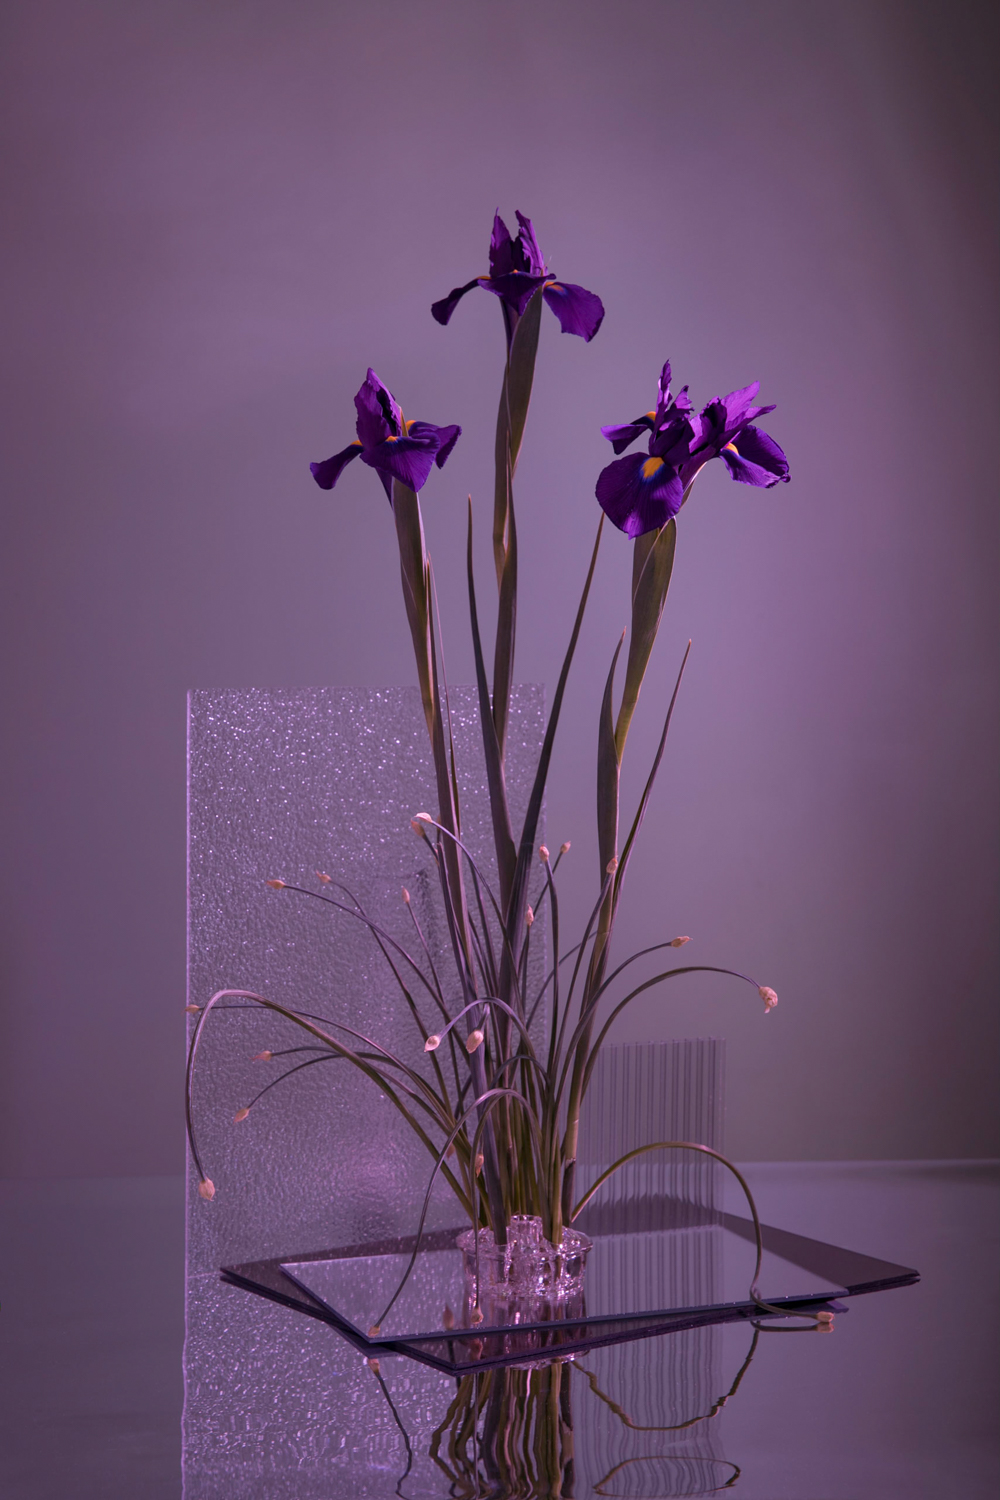 02_new-wave-ikebana_GracexAndria.jpg